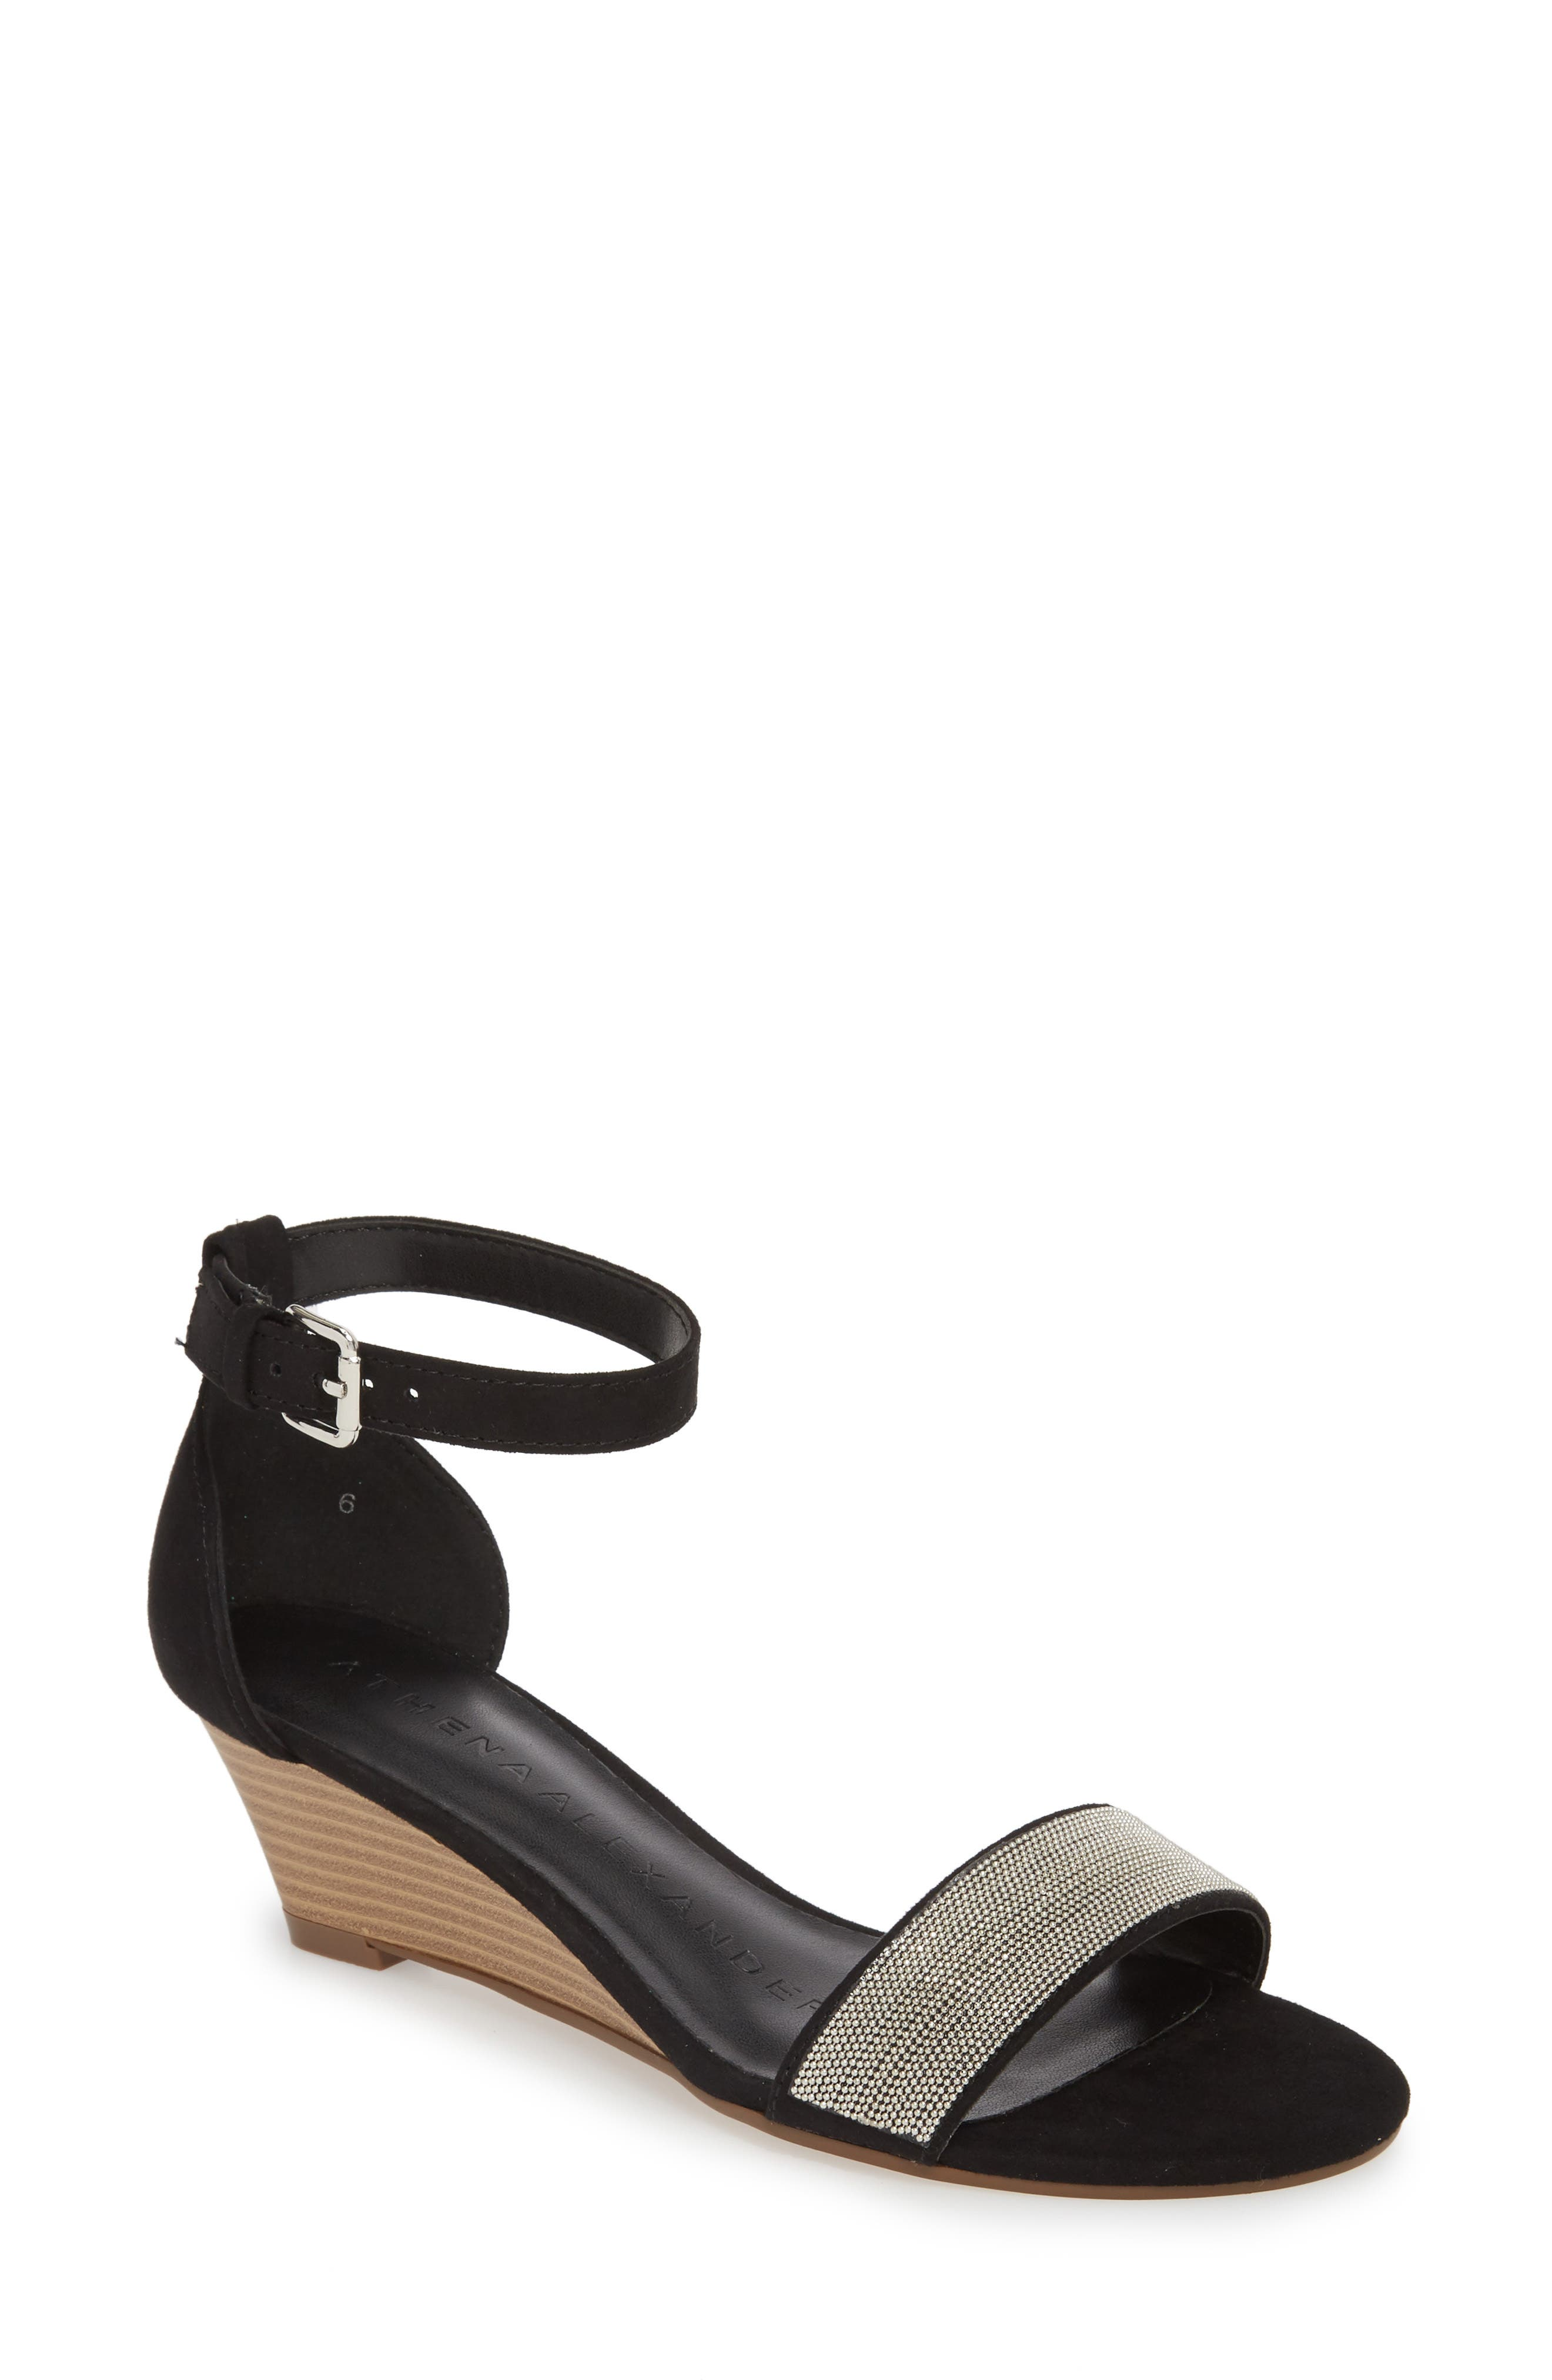 Enfield Ankle Strap Wedge Sandal,                         Main,                         color, 003